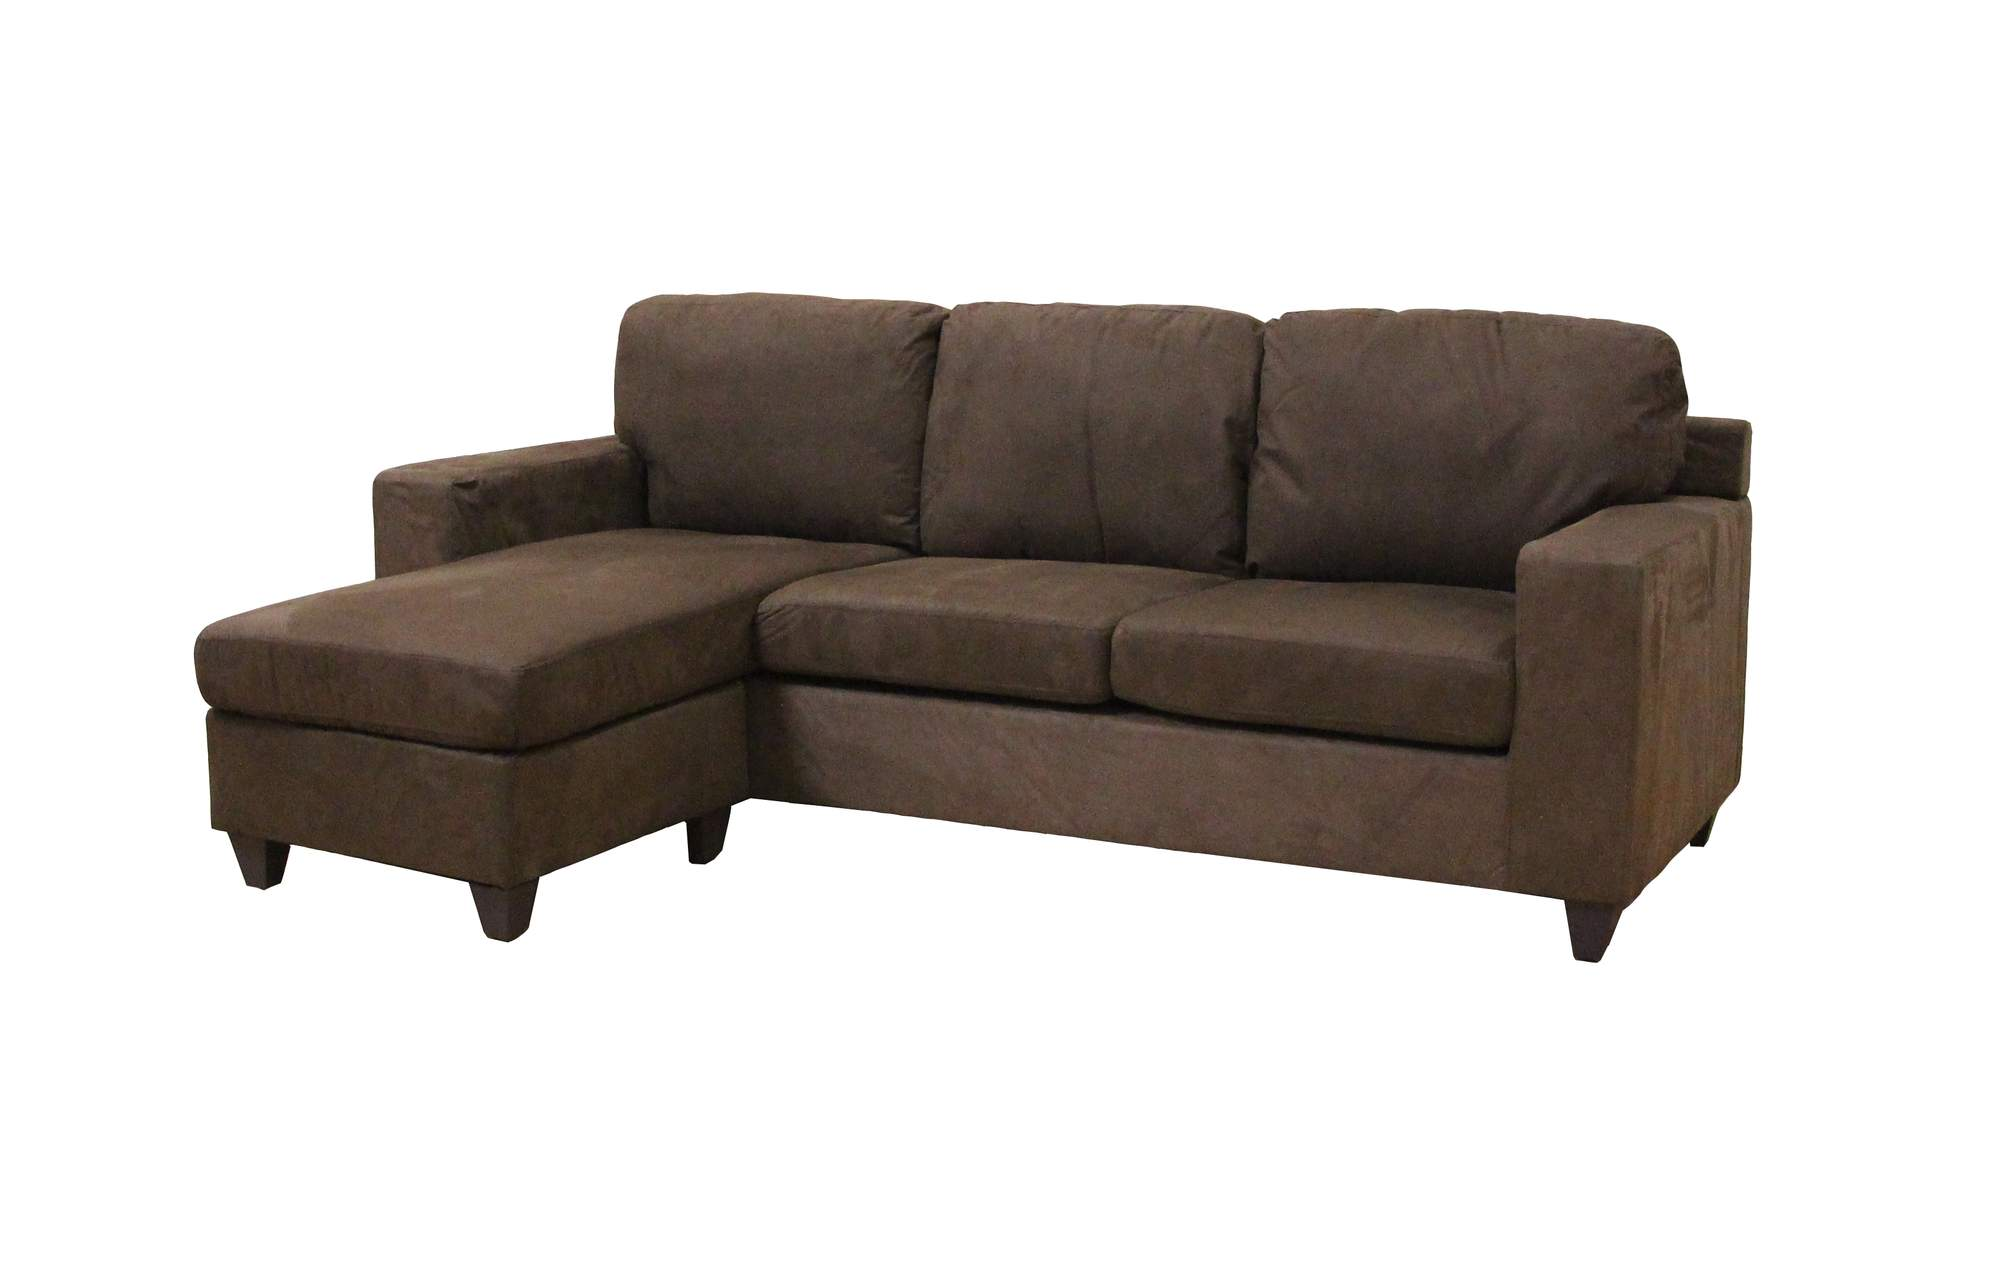 Microfiber Sectional Sofa Acme Vogue Microfiber Reversible Chaise Sectional Sofa Multiple Colors